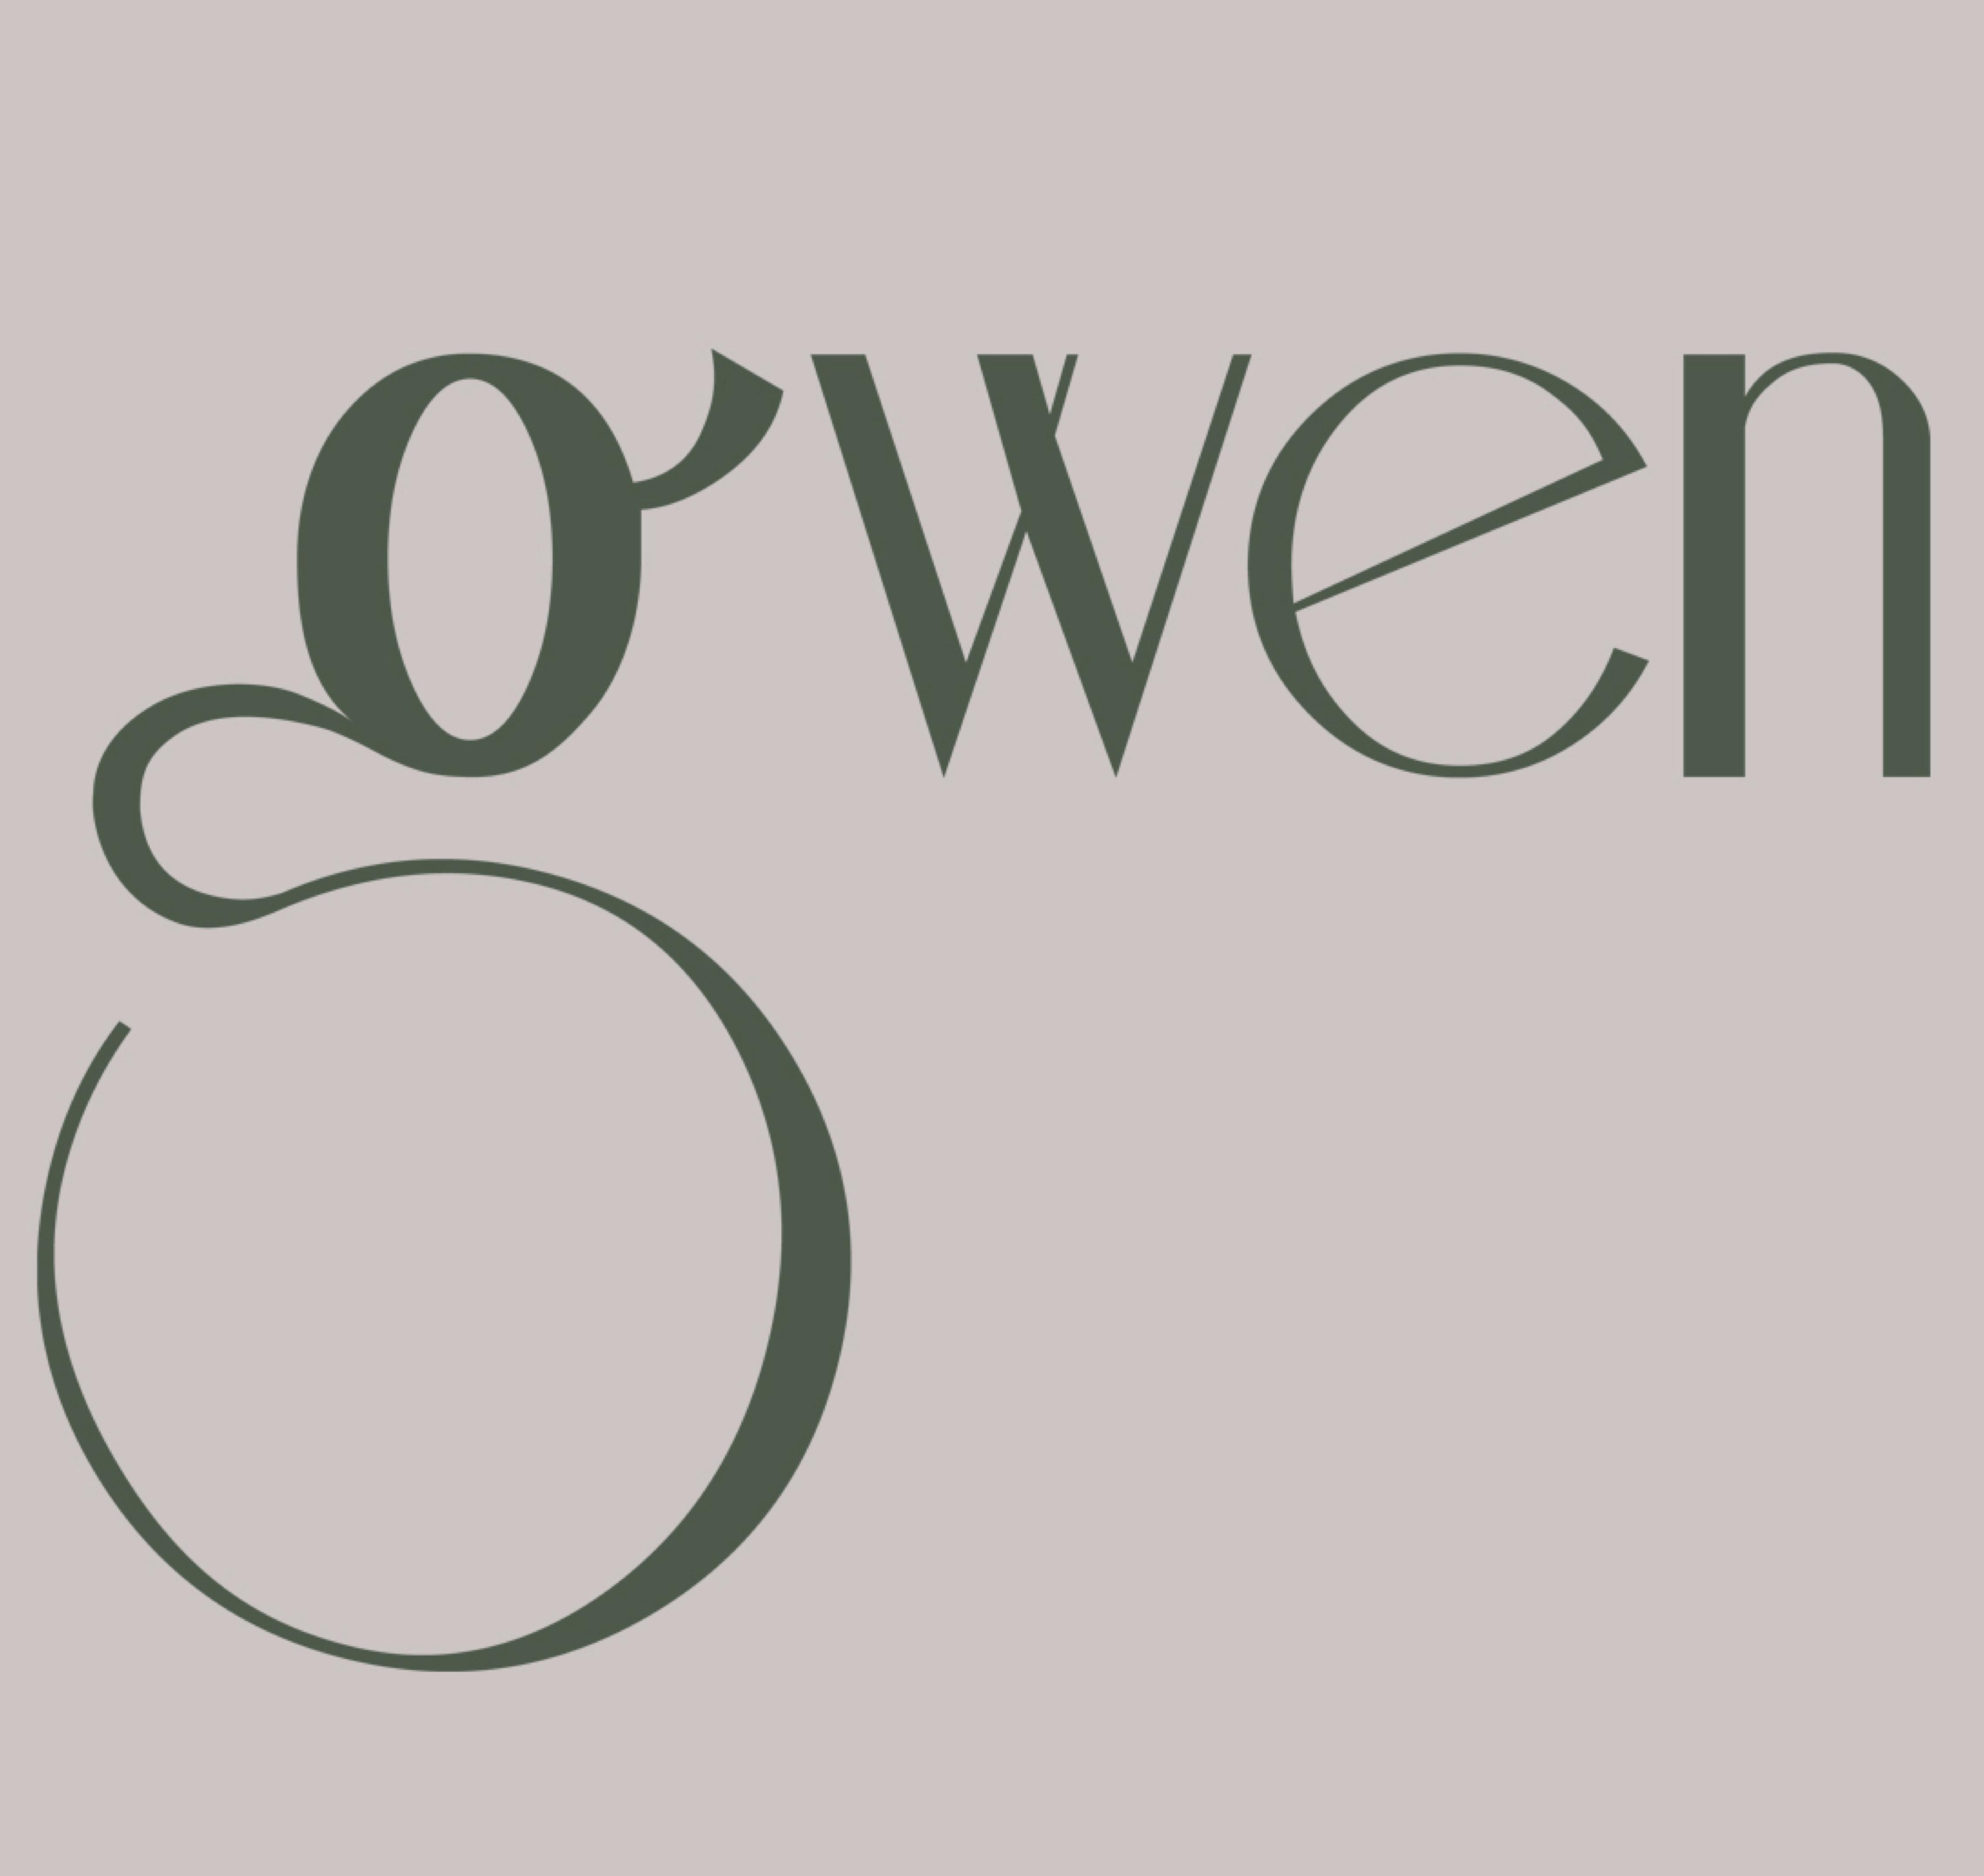 Gwen Specialty Butcher Shop and Restaurant logo